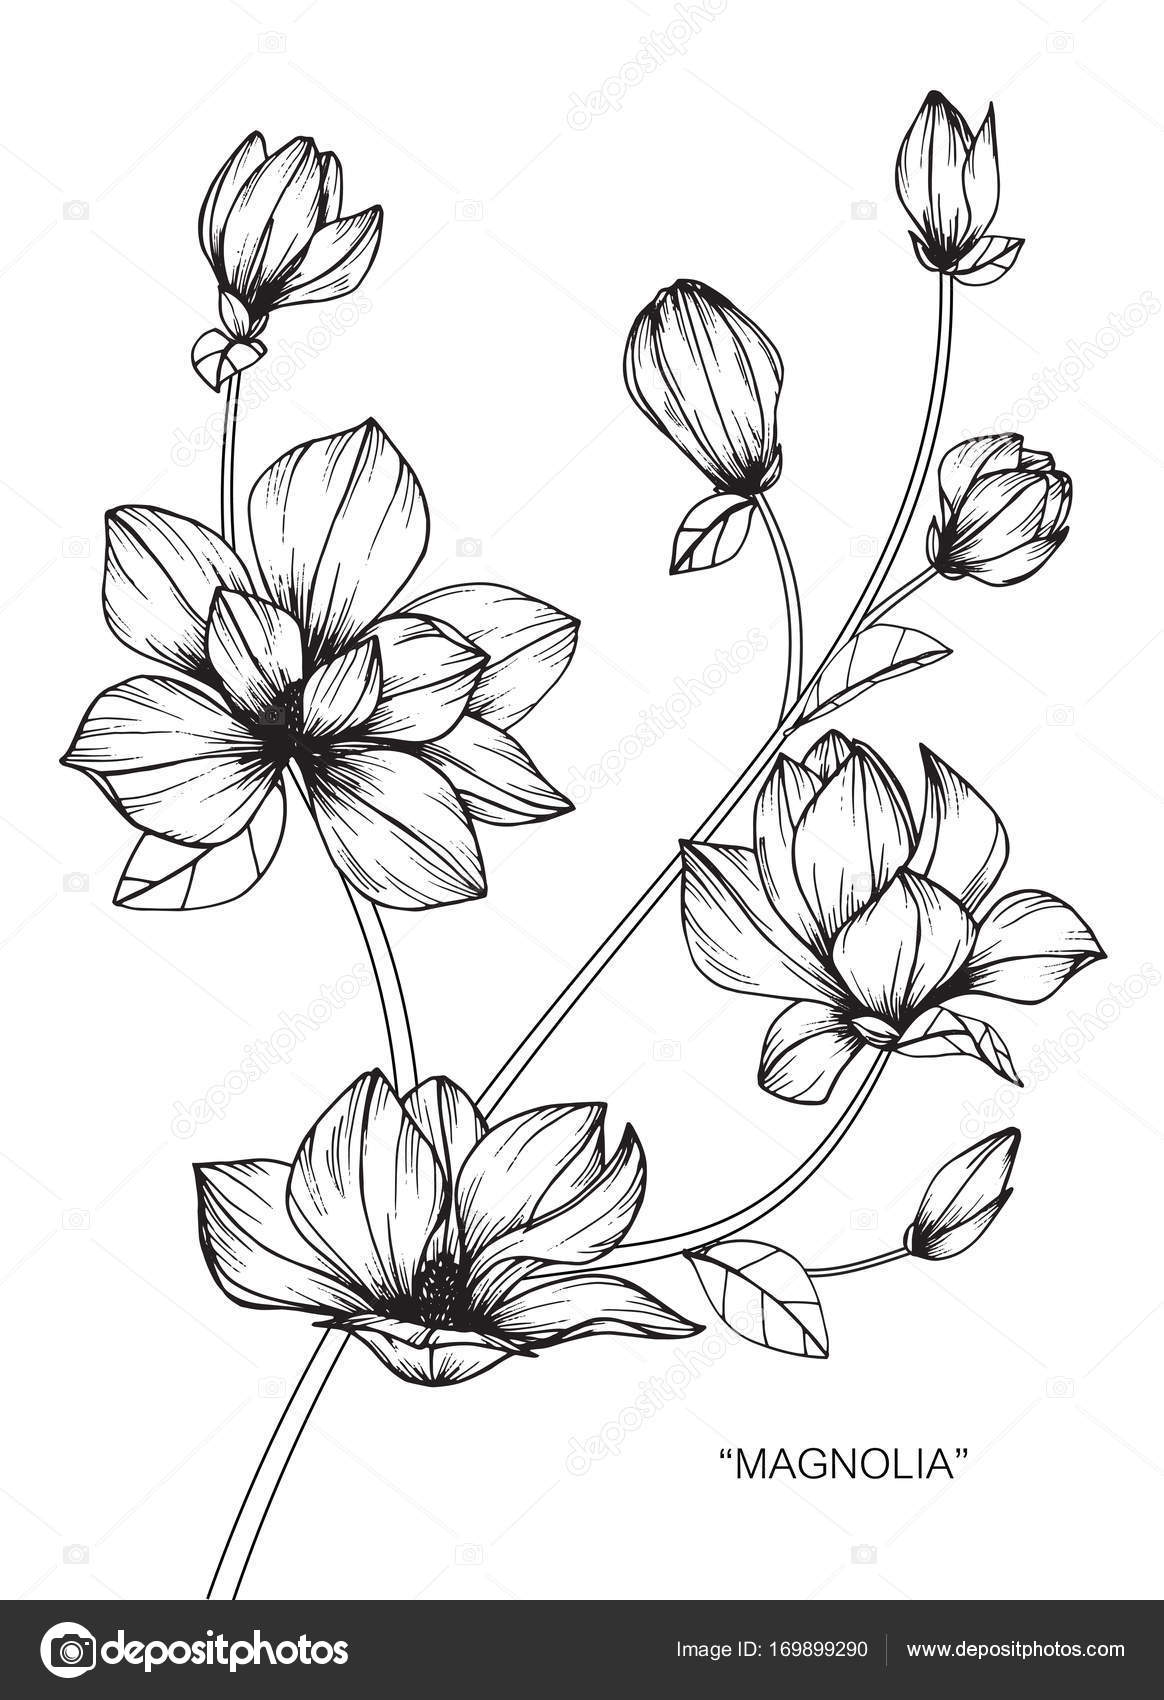 Magnolia Flower Line Drawing : Magnolia flower drawing flowers ideas for review